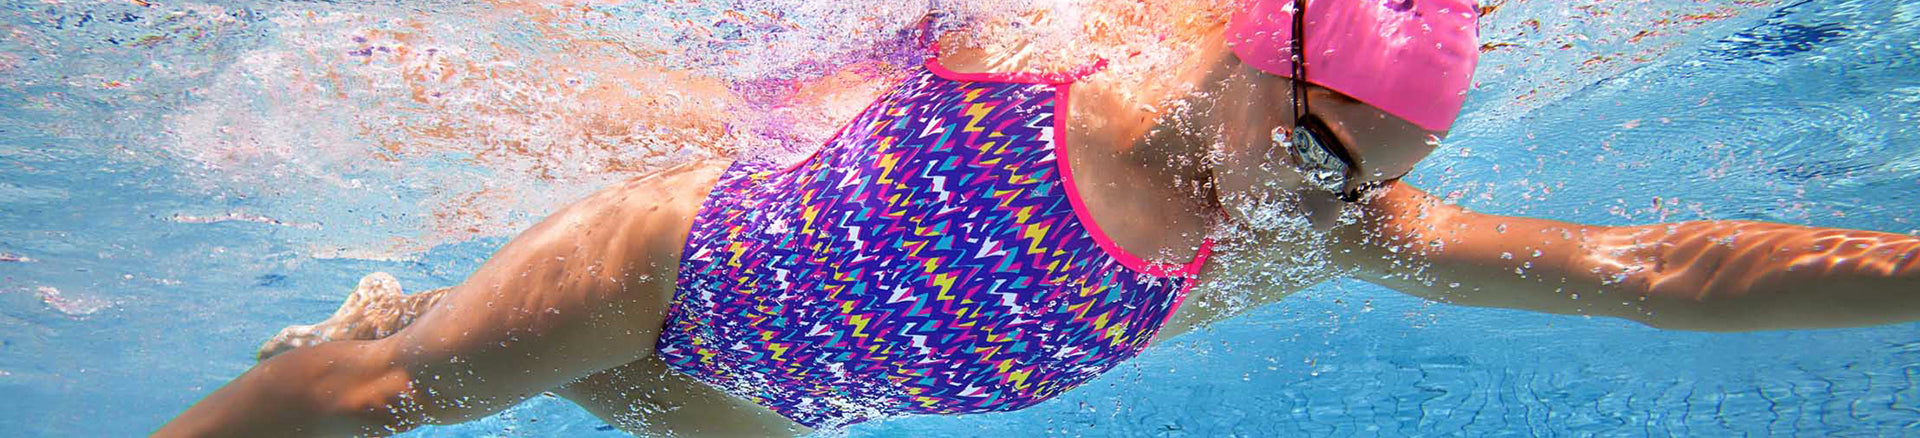 ZEALOUS TRAINING SWIMWEAR - THIN STRAP ONE PIECE - CHLORINE RESISTANT